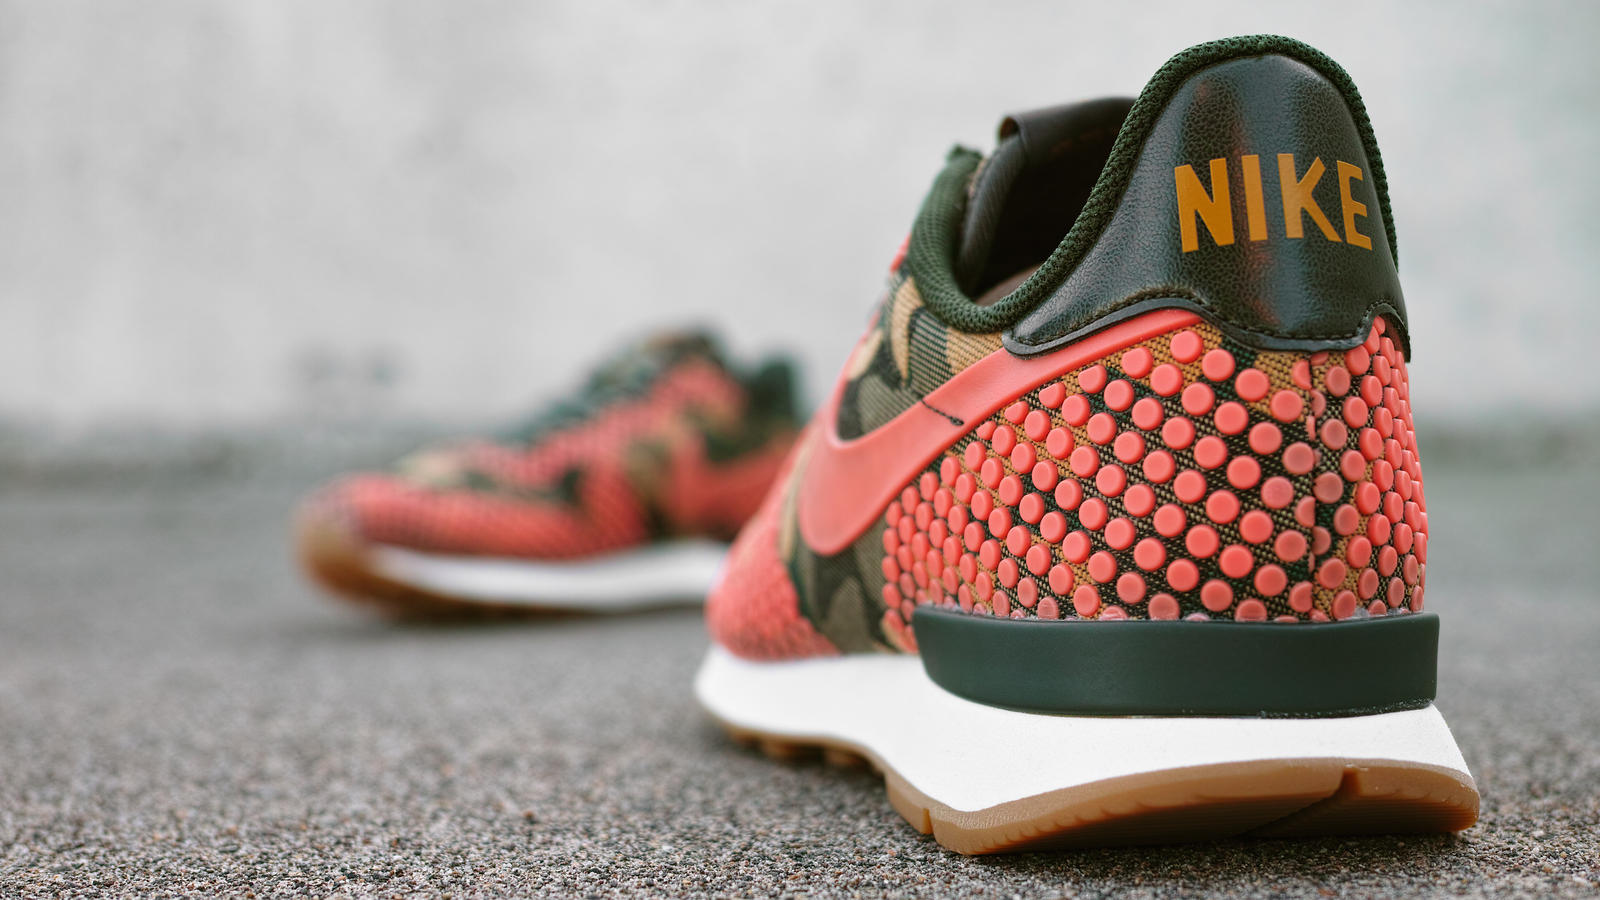 Nike internationalist jacquard premium 3 hd 1600